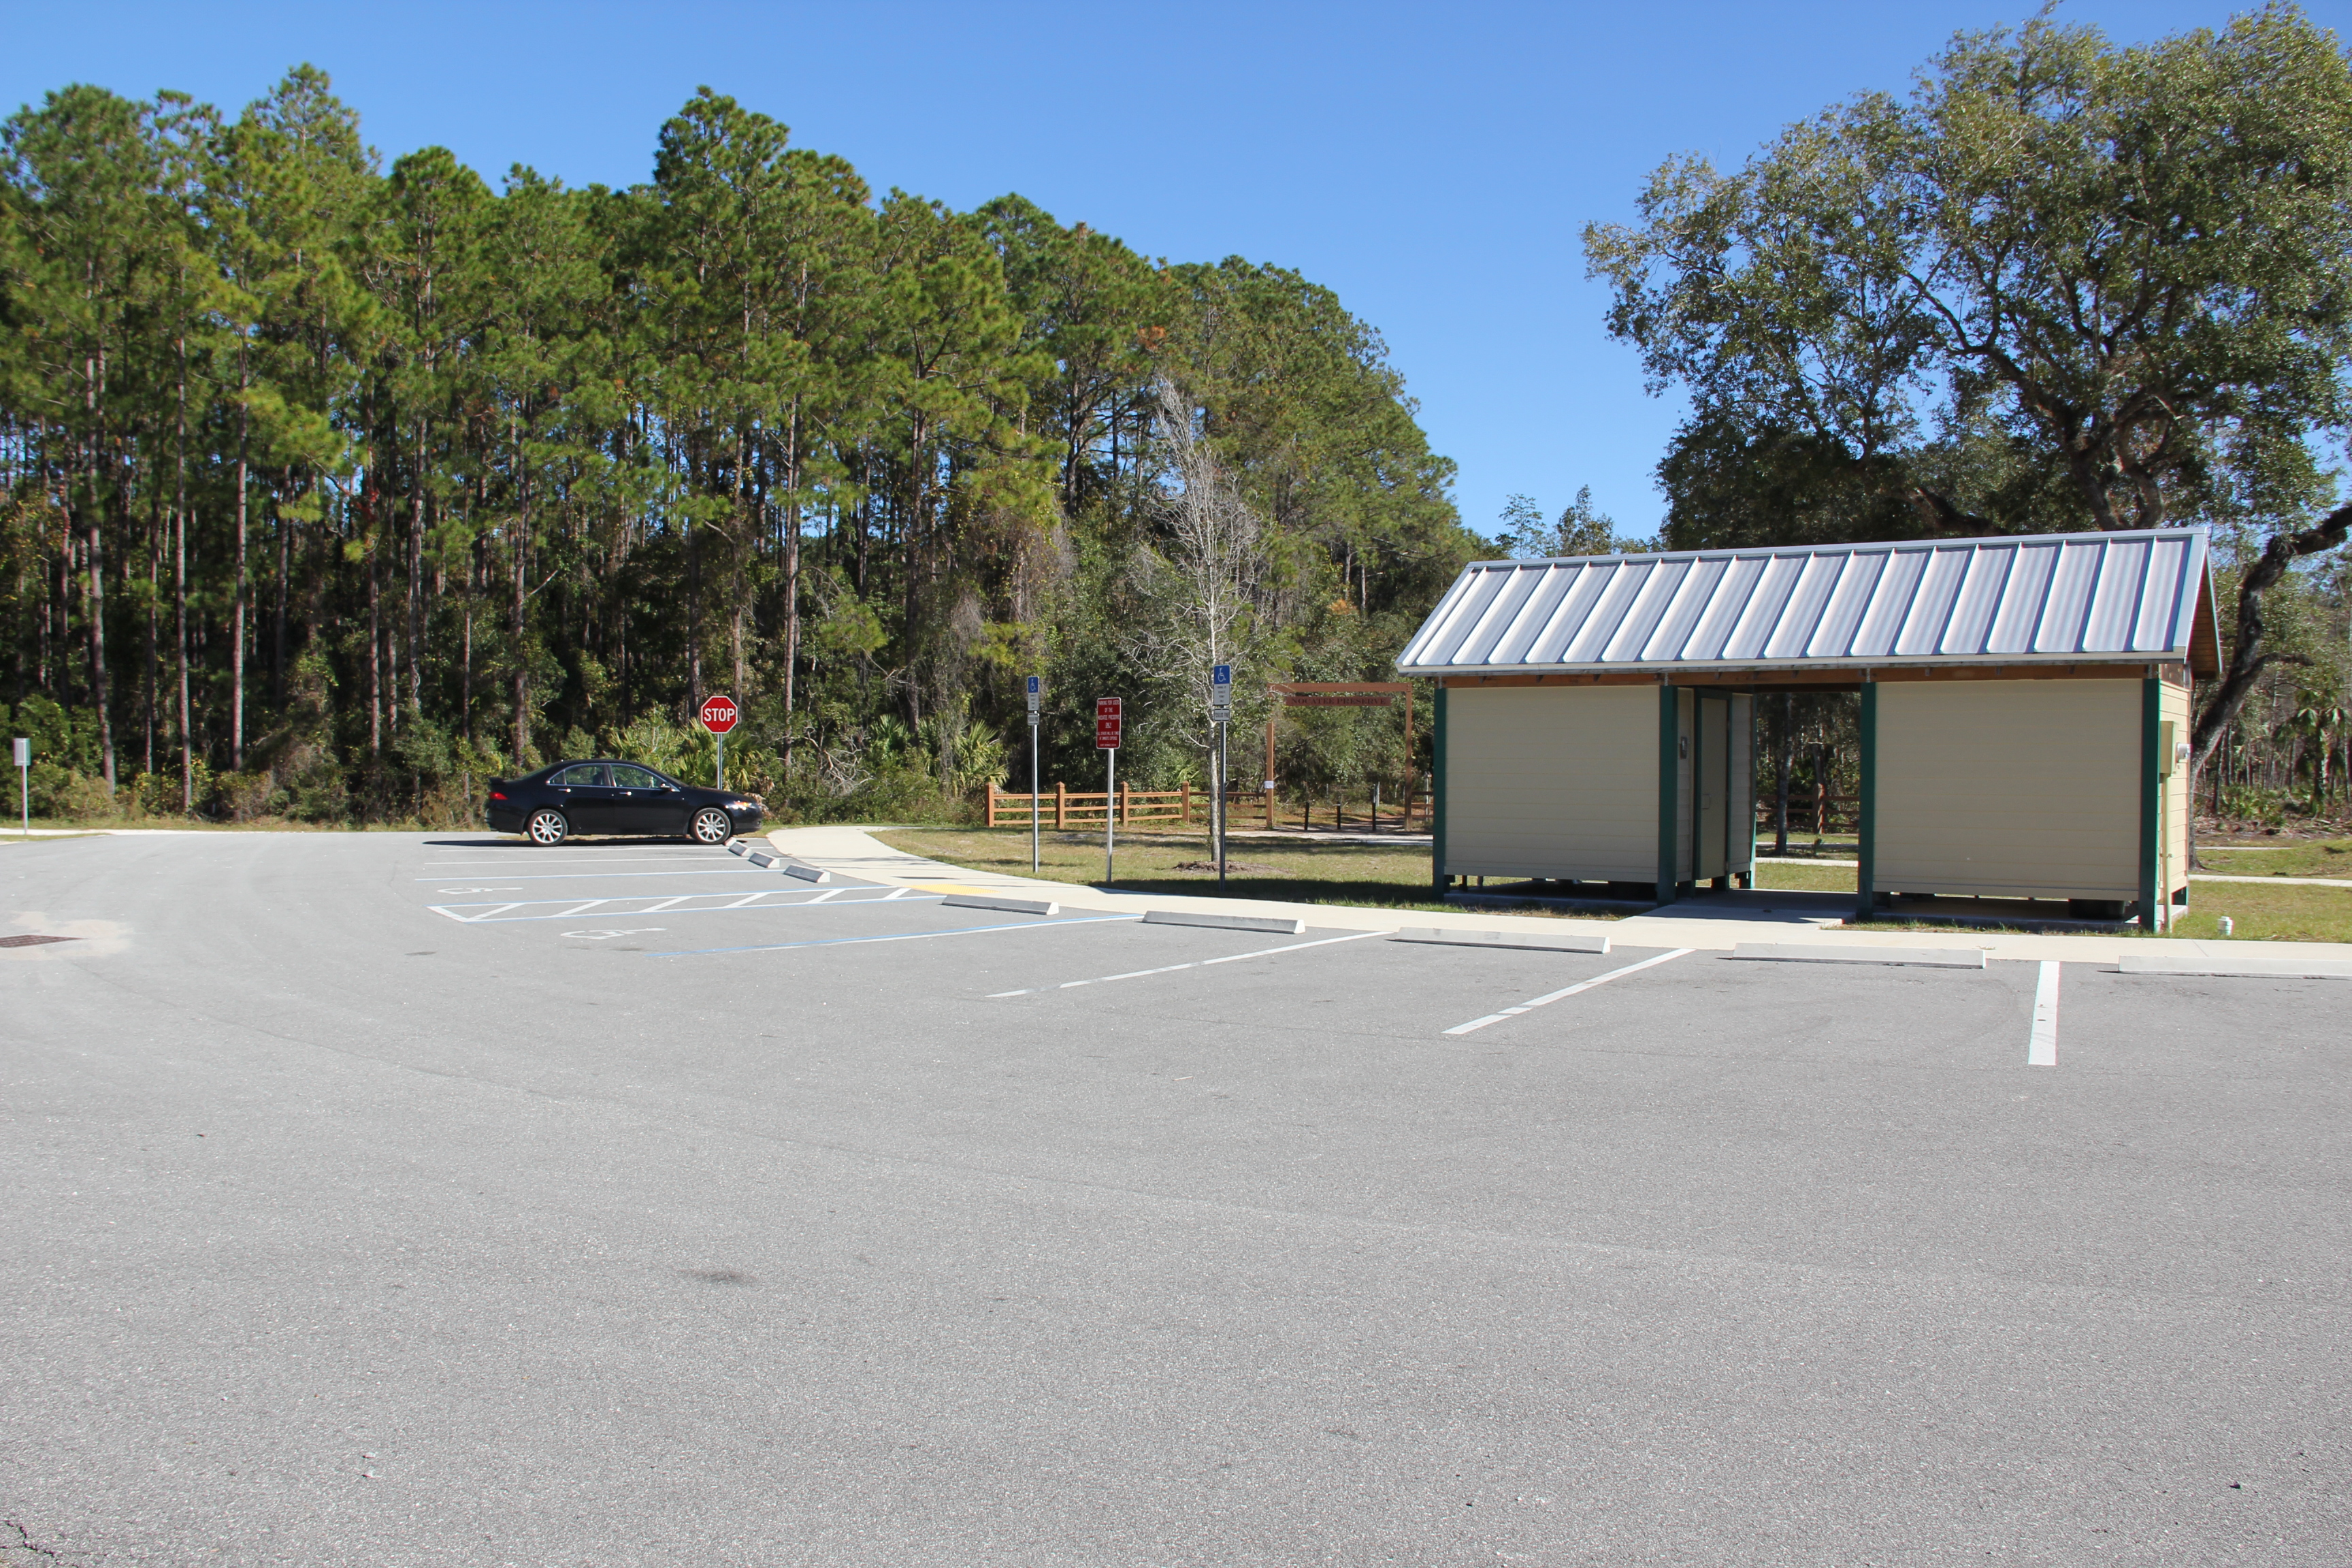 Photo of the parking lot for the Nocatee Trail Head Park. It shows the restrooms with tin roofing and a car parked in front of the trail entrance